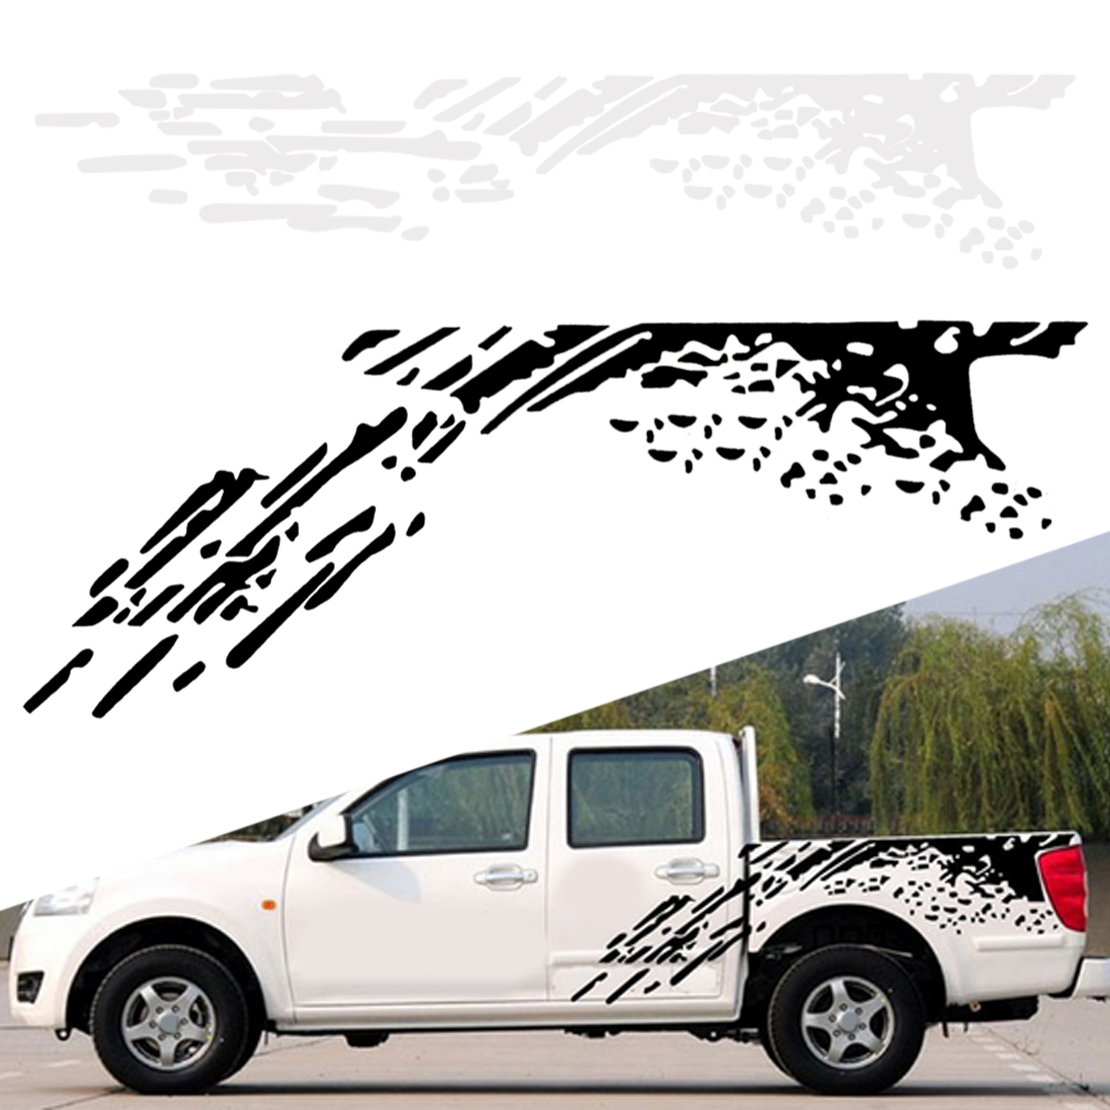 Details about car truck side bed mud splash decal sticker for ford raptor f 150 2009 2018